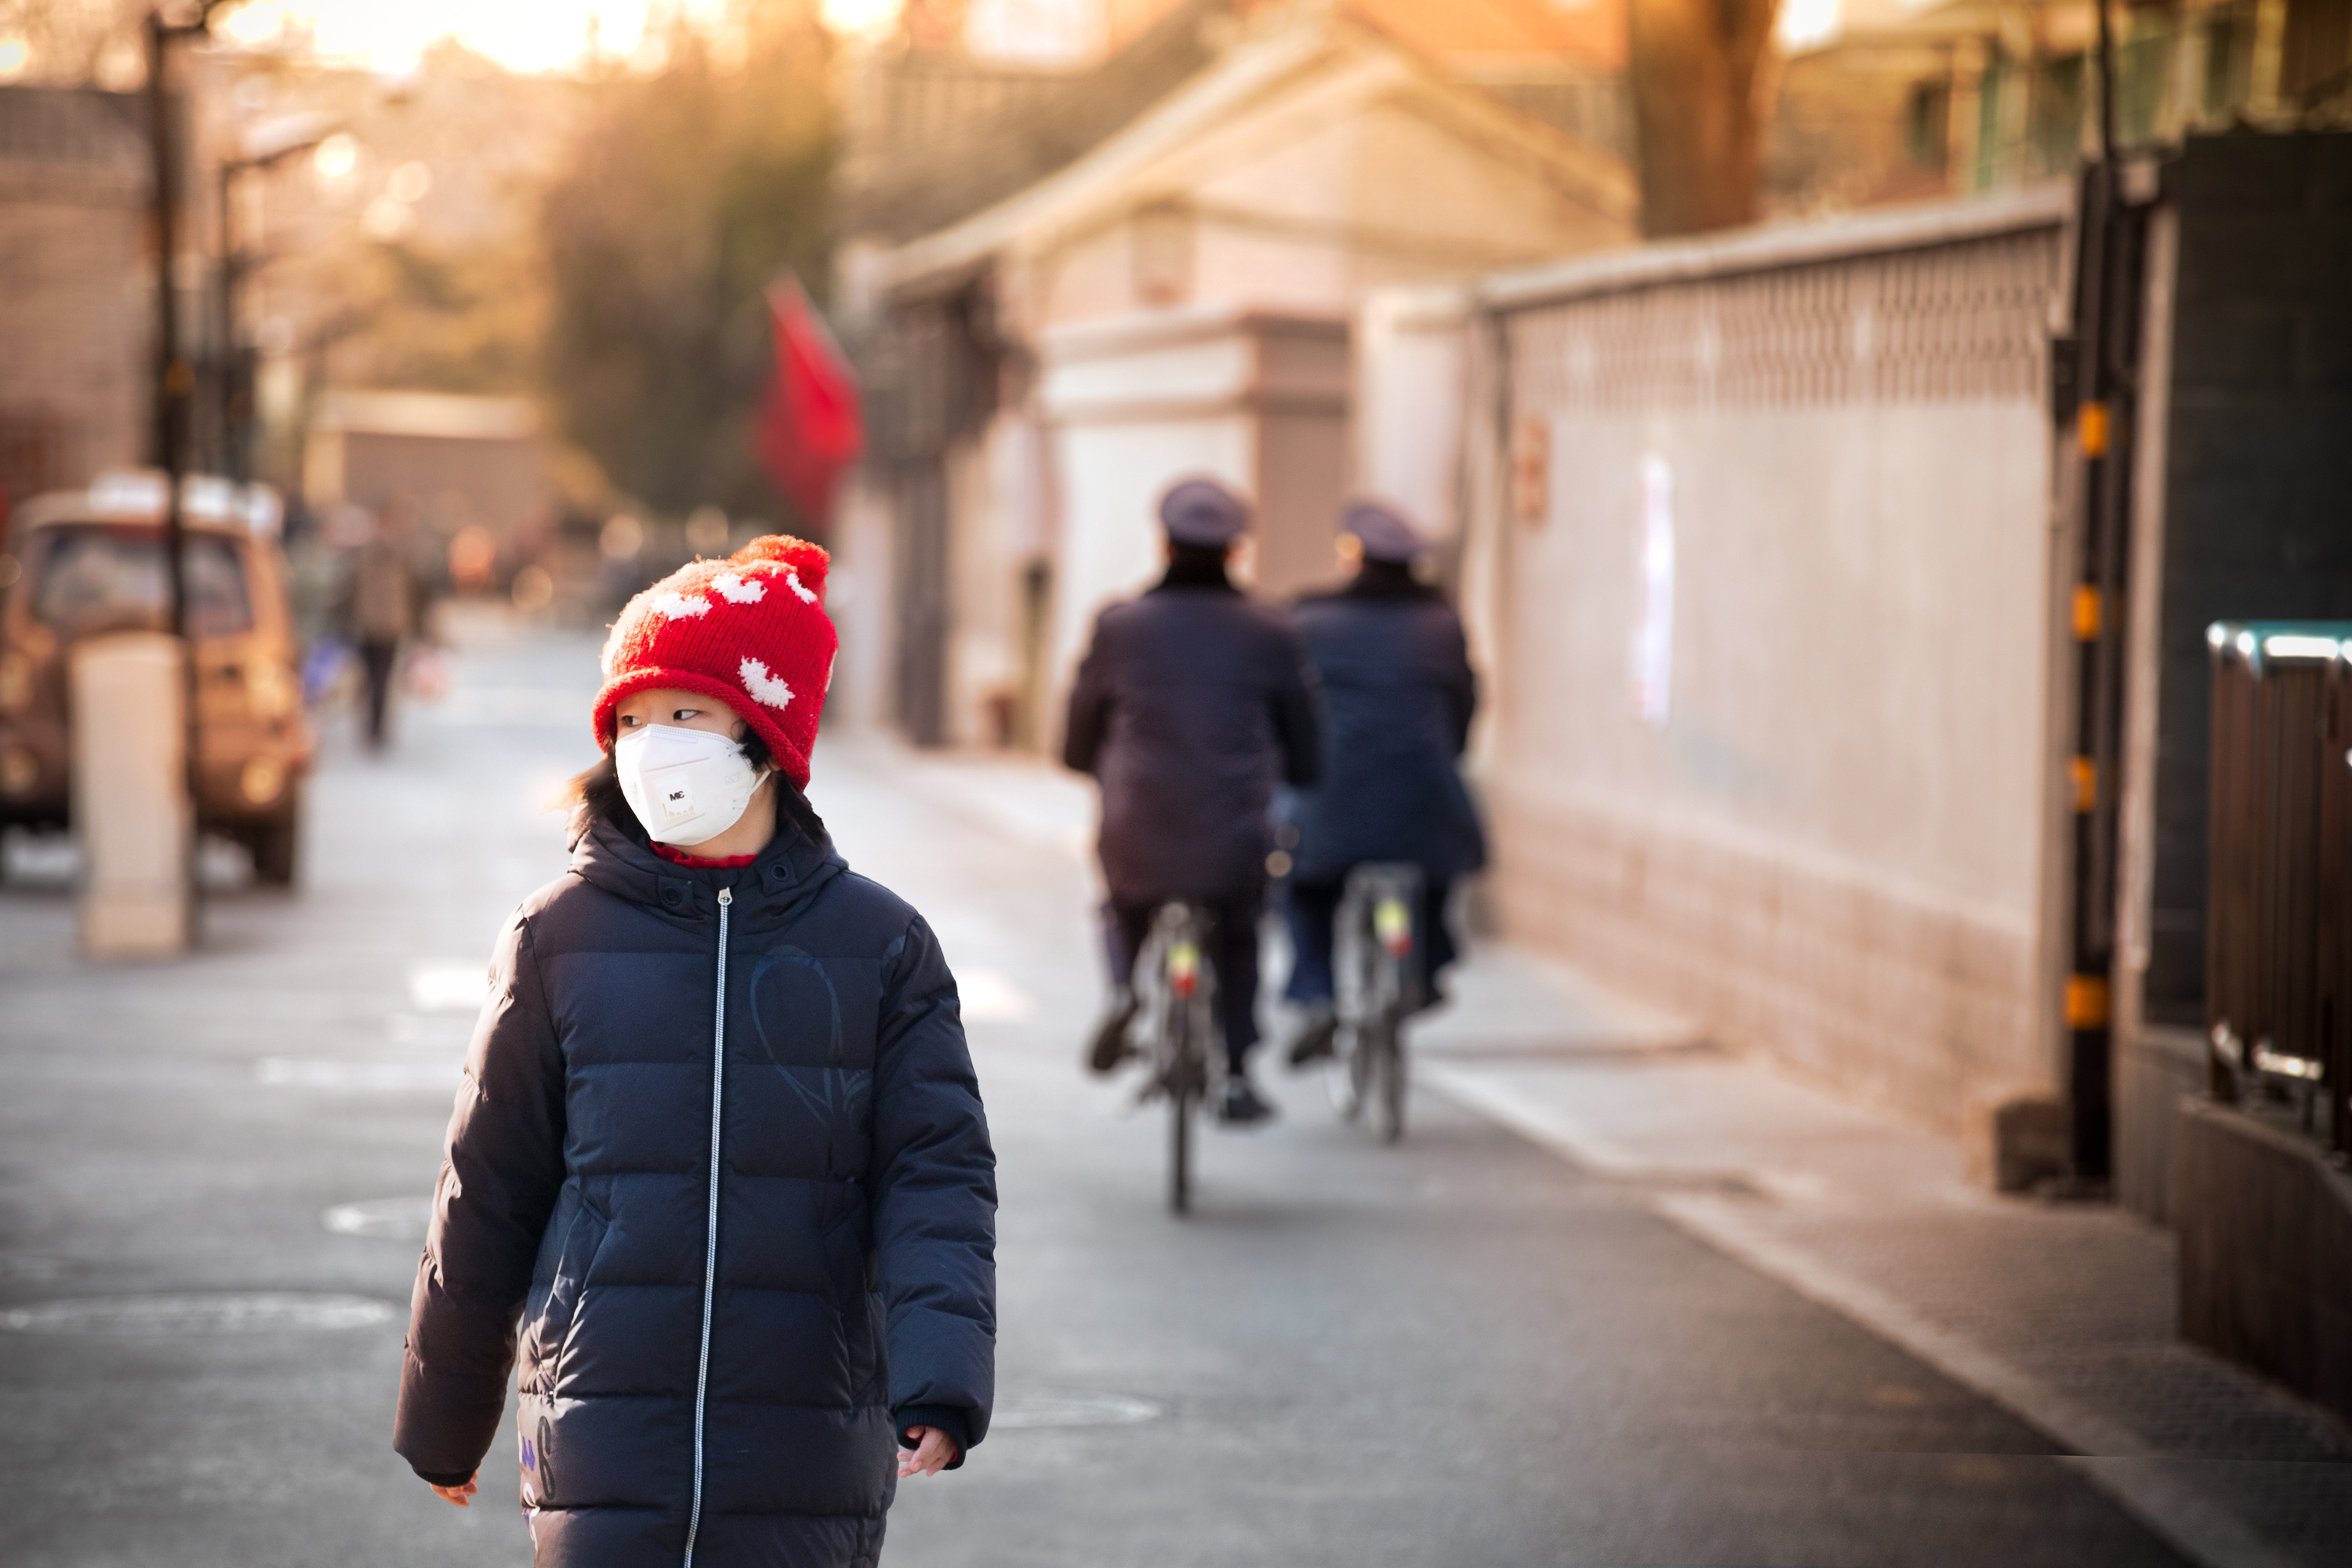 A girl walks the old backstreets of Beijing as COVID measures were implemented in January. At the time, police patrols were increased throughout the city. (Saša Petricic/CBC)